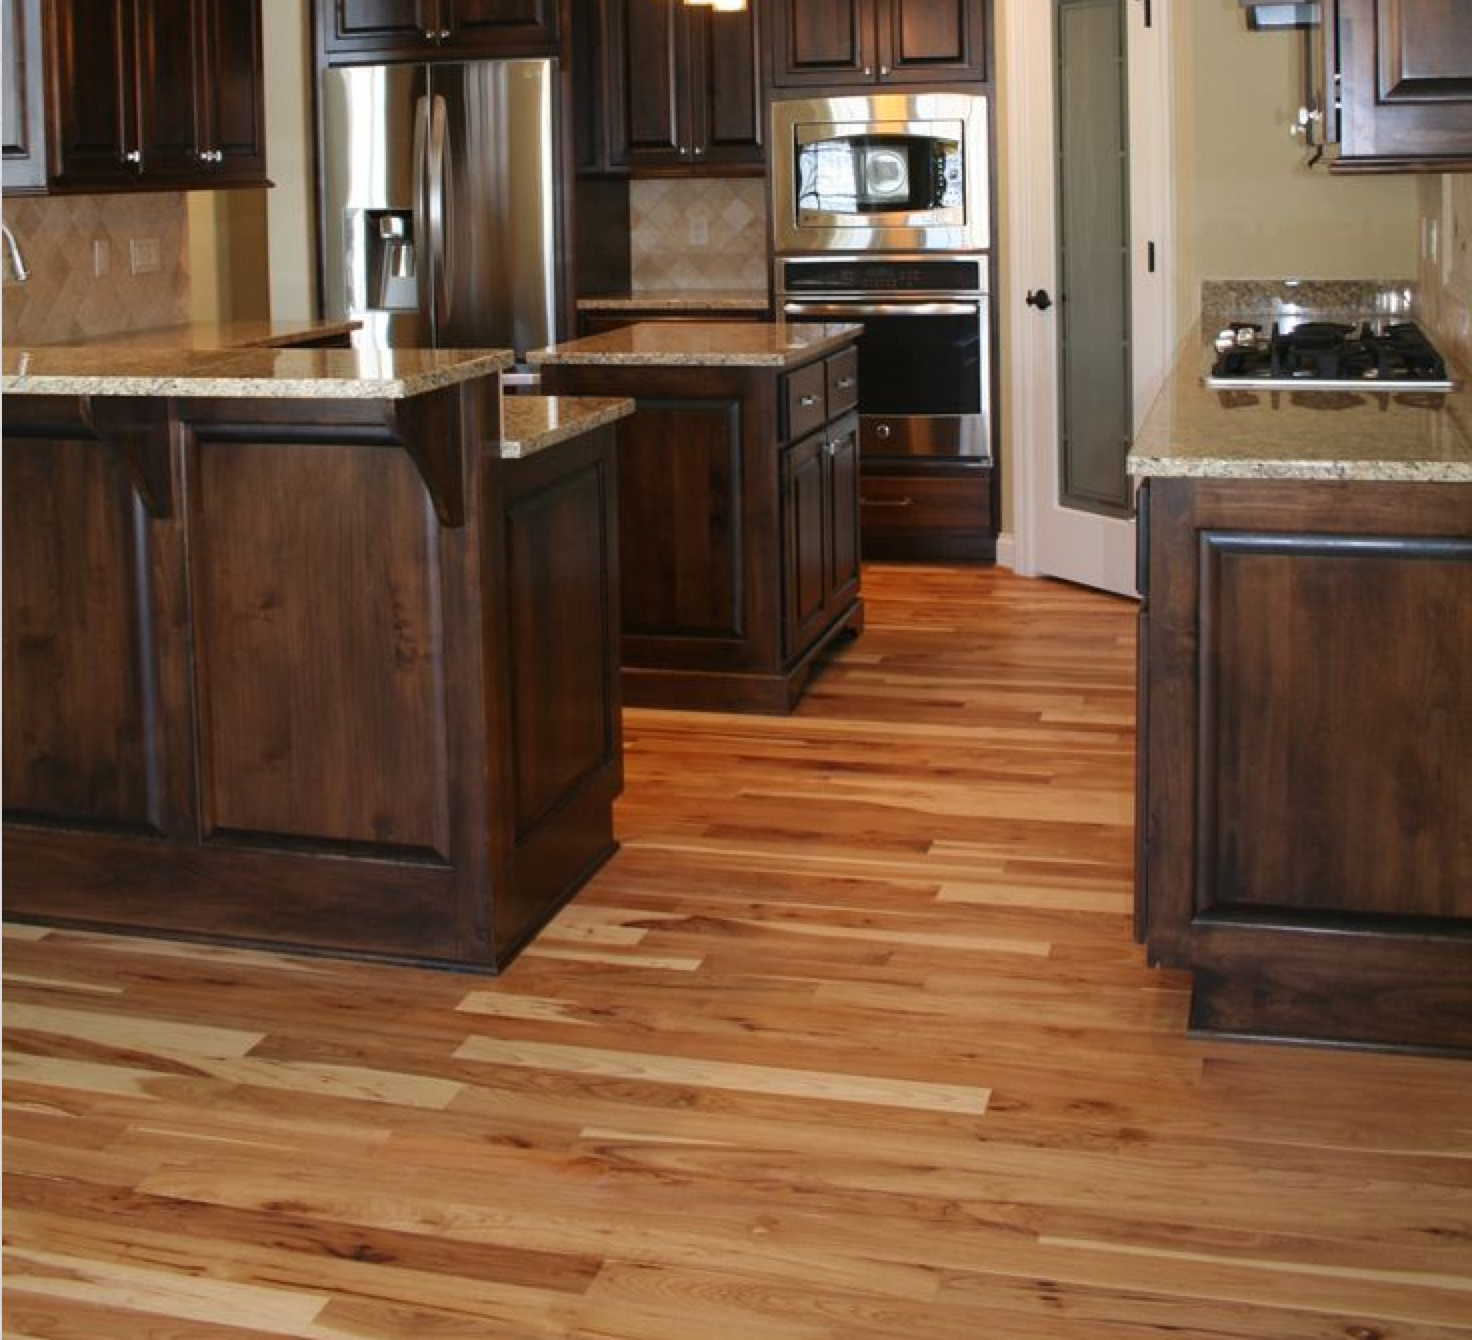 Dark cabinets with hickory wood floors wood floors for Floor kitchen cabinets